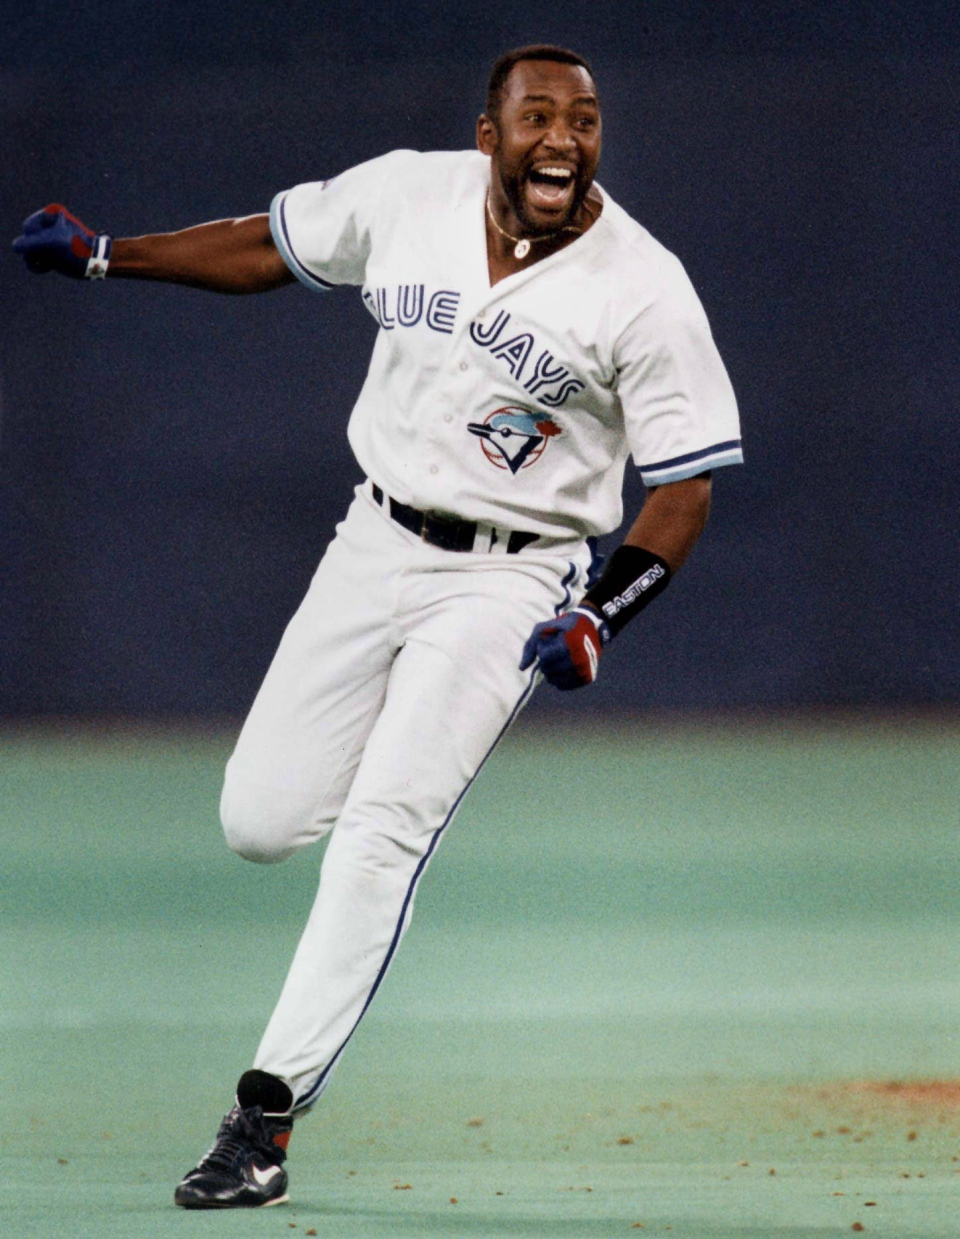 Joe Carter Home Run